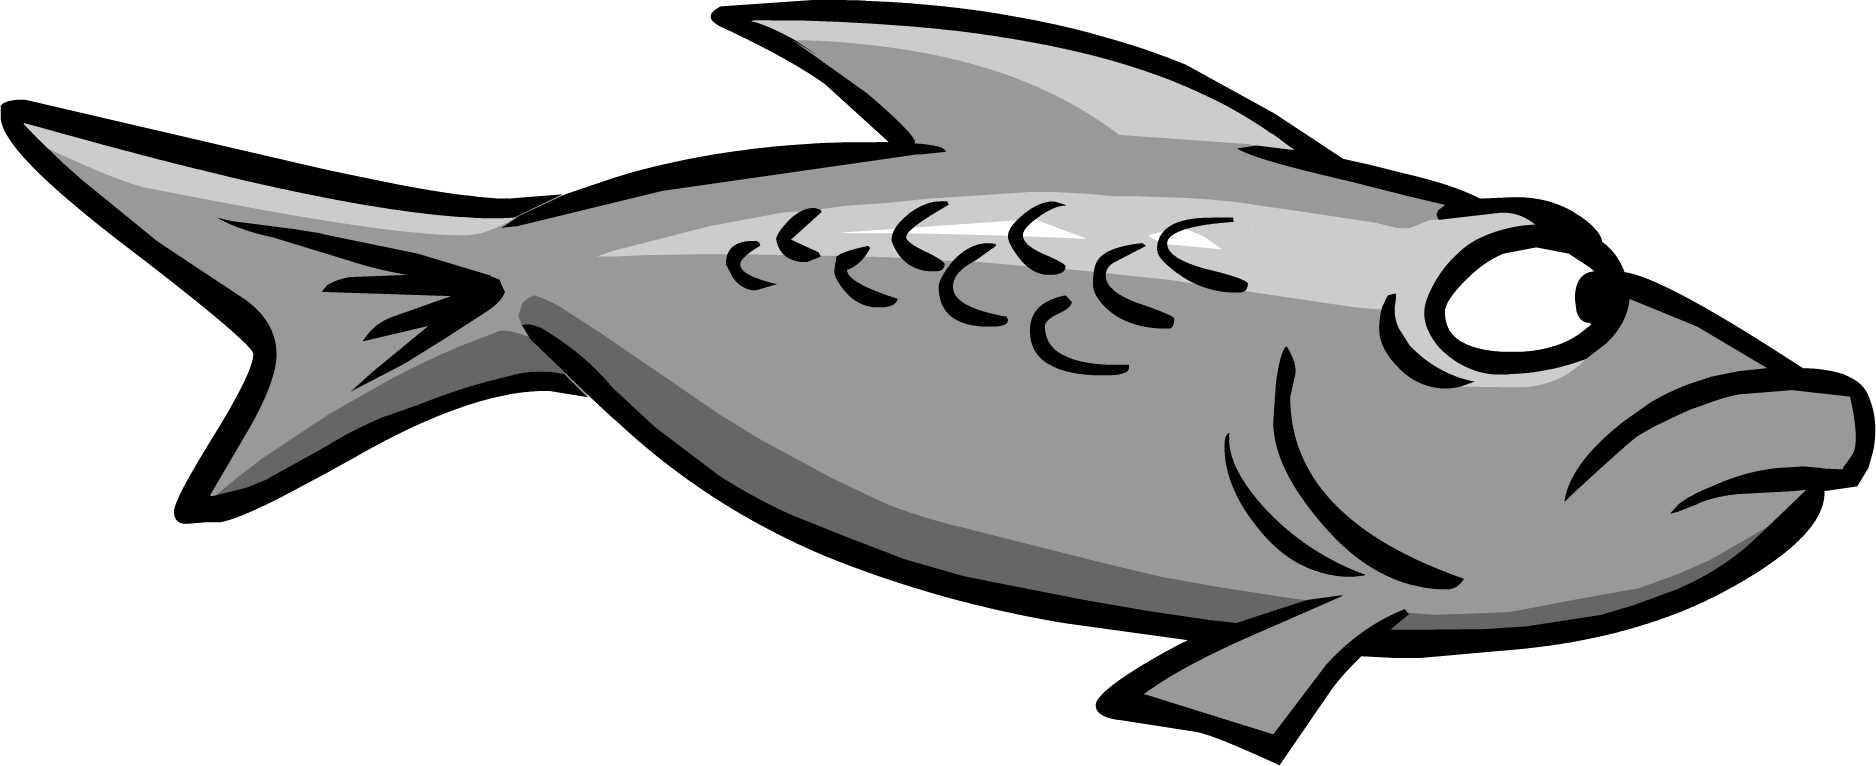 svg transparent Goldfish clipart dead crow. Gray fish club penguin